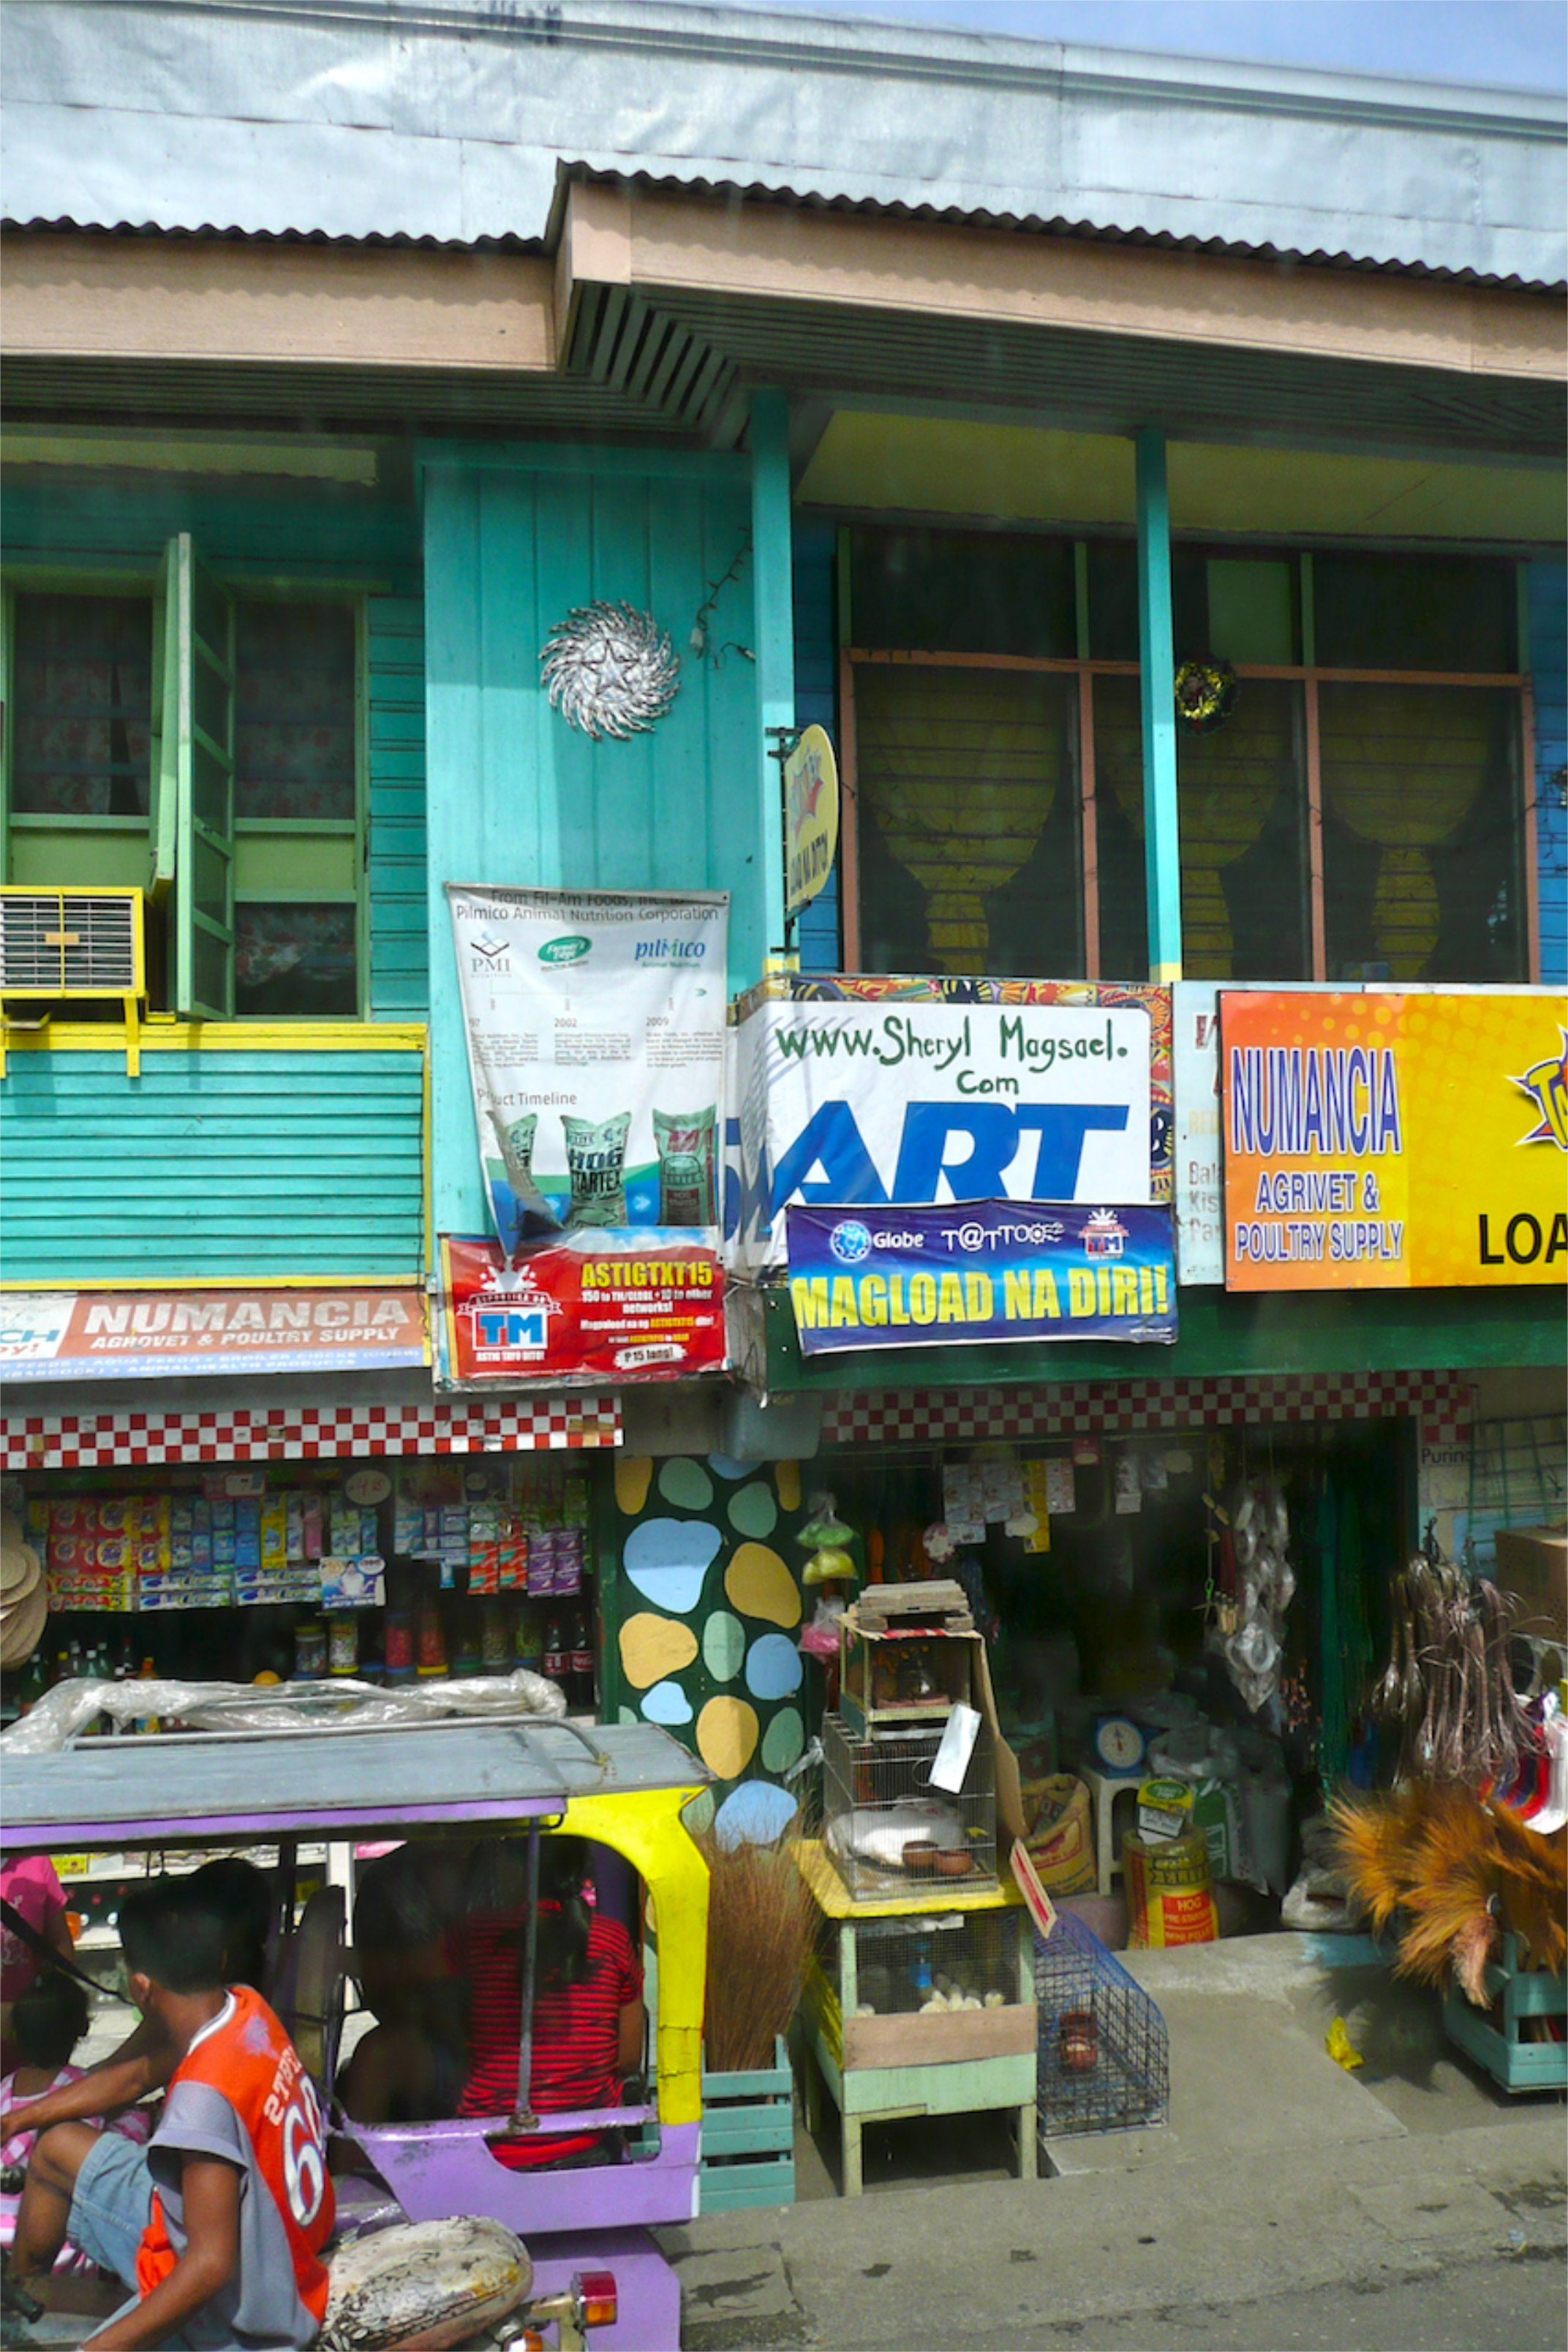 Local shops along the road in the Philippines